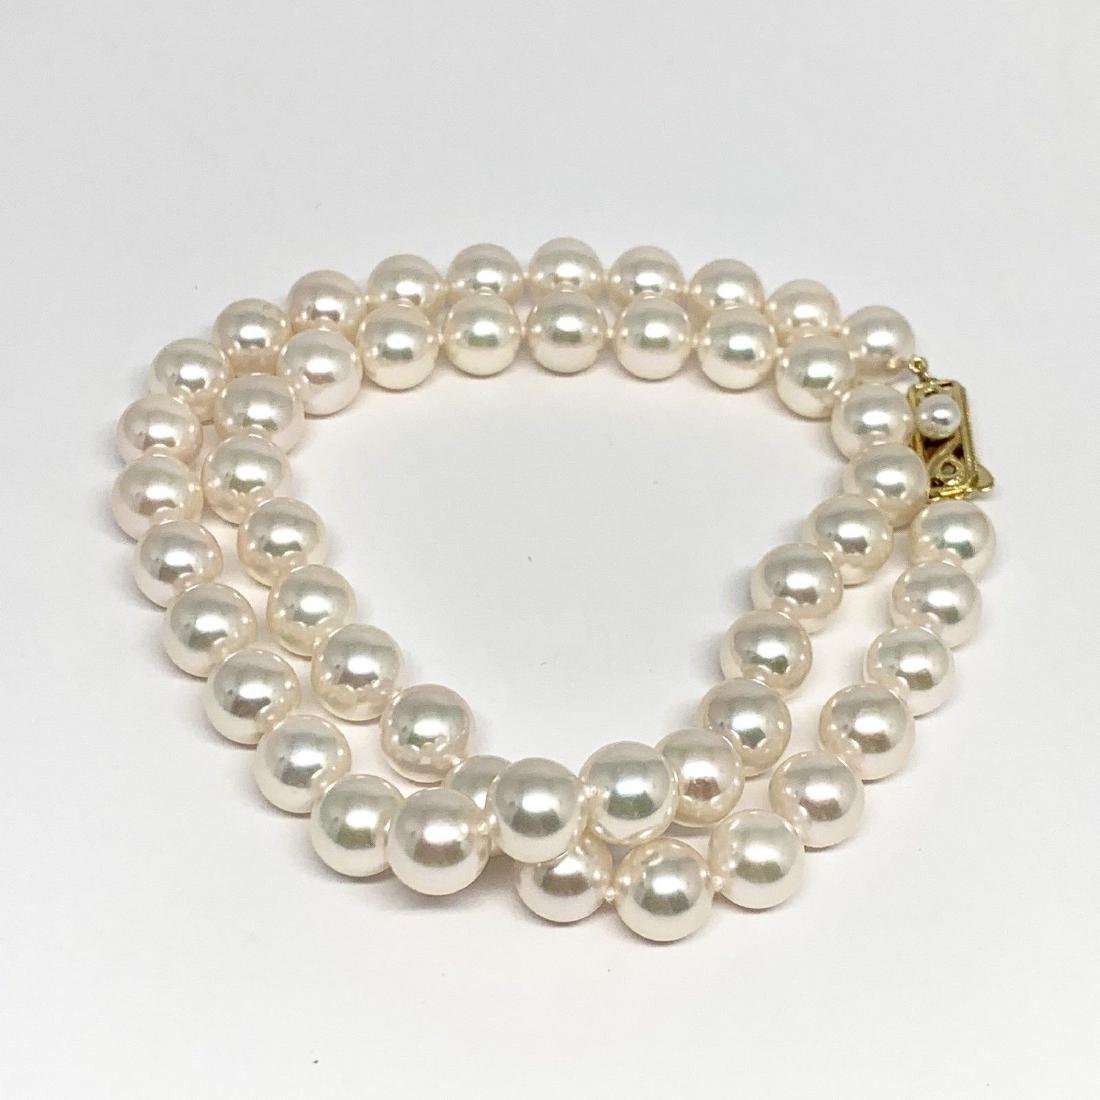 CERTIFIED BY MIKIMOTO $8,350 LARGE 8.5-8 MM 17.5 INCH - 5